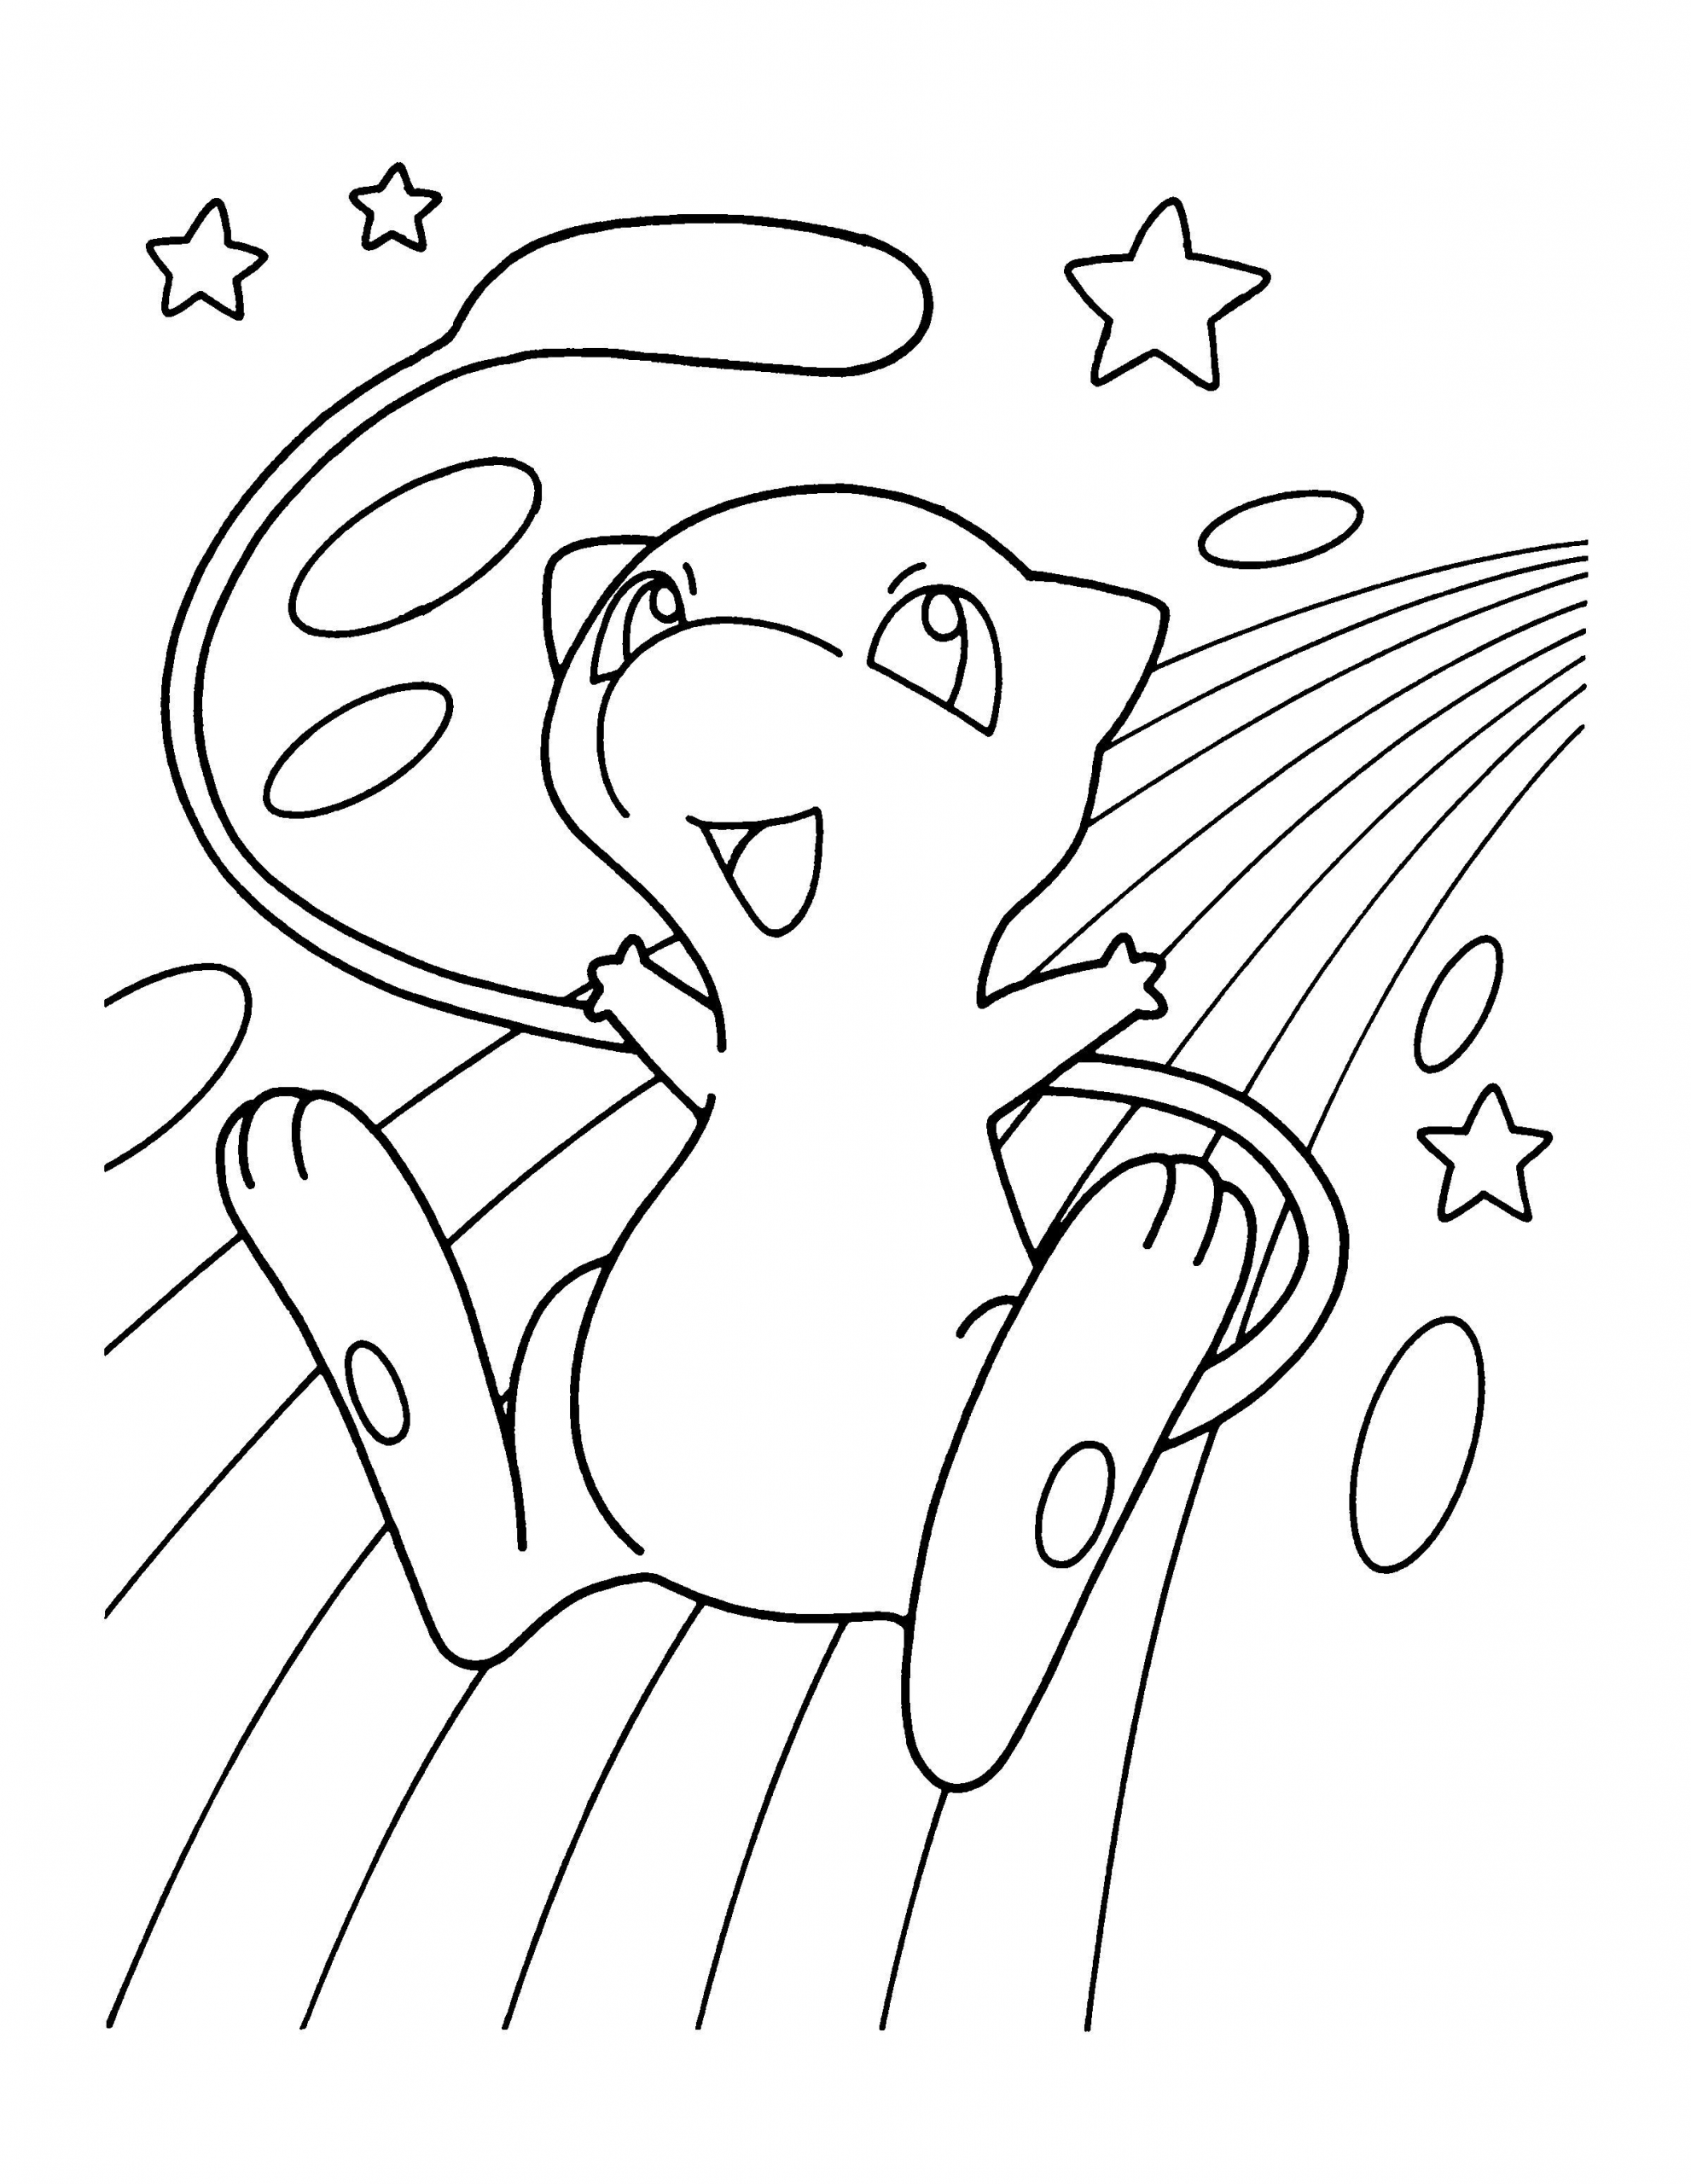 Mew Pokemon Coloring Page Youngandtae Com Pokemon Coloring Pages Cartoon Coloring Pages Horse Coloring Pages